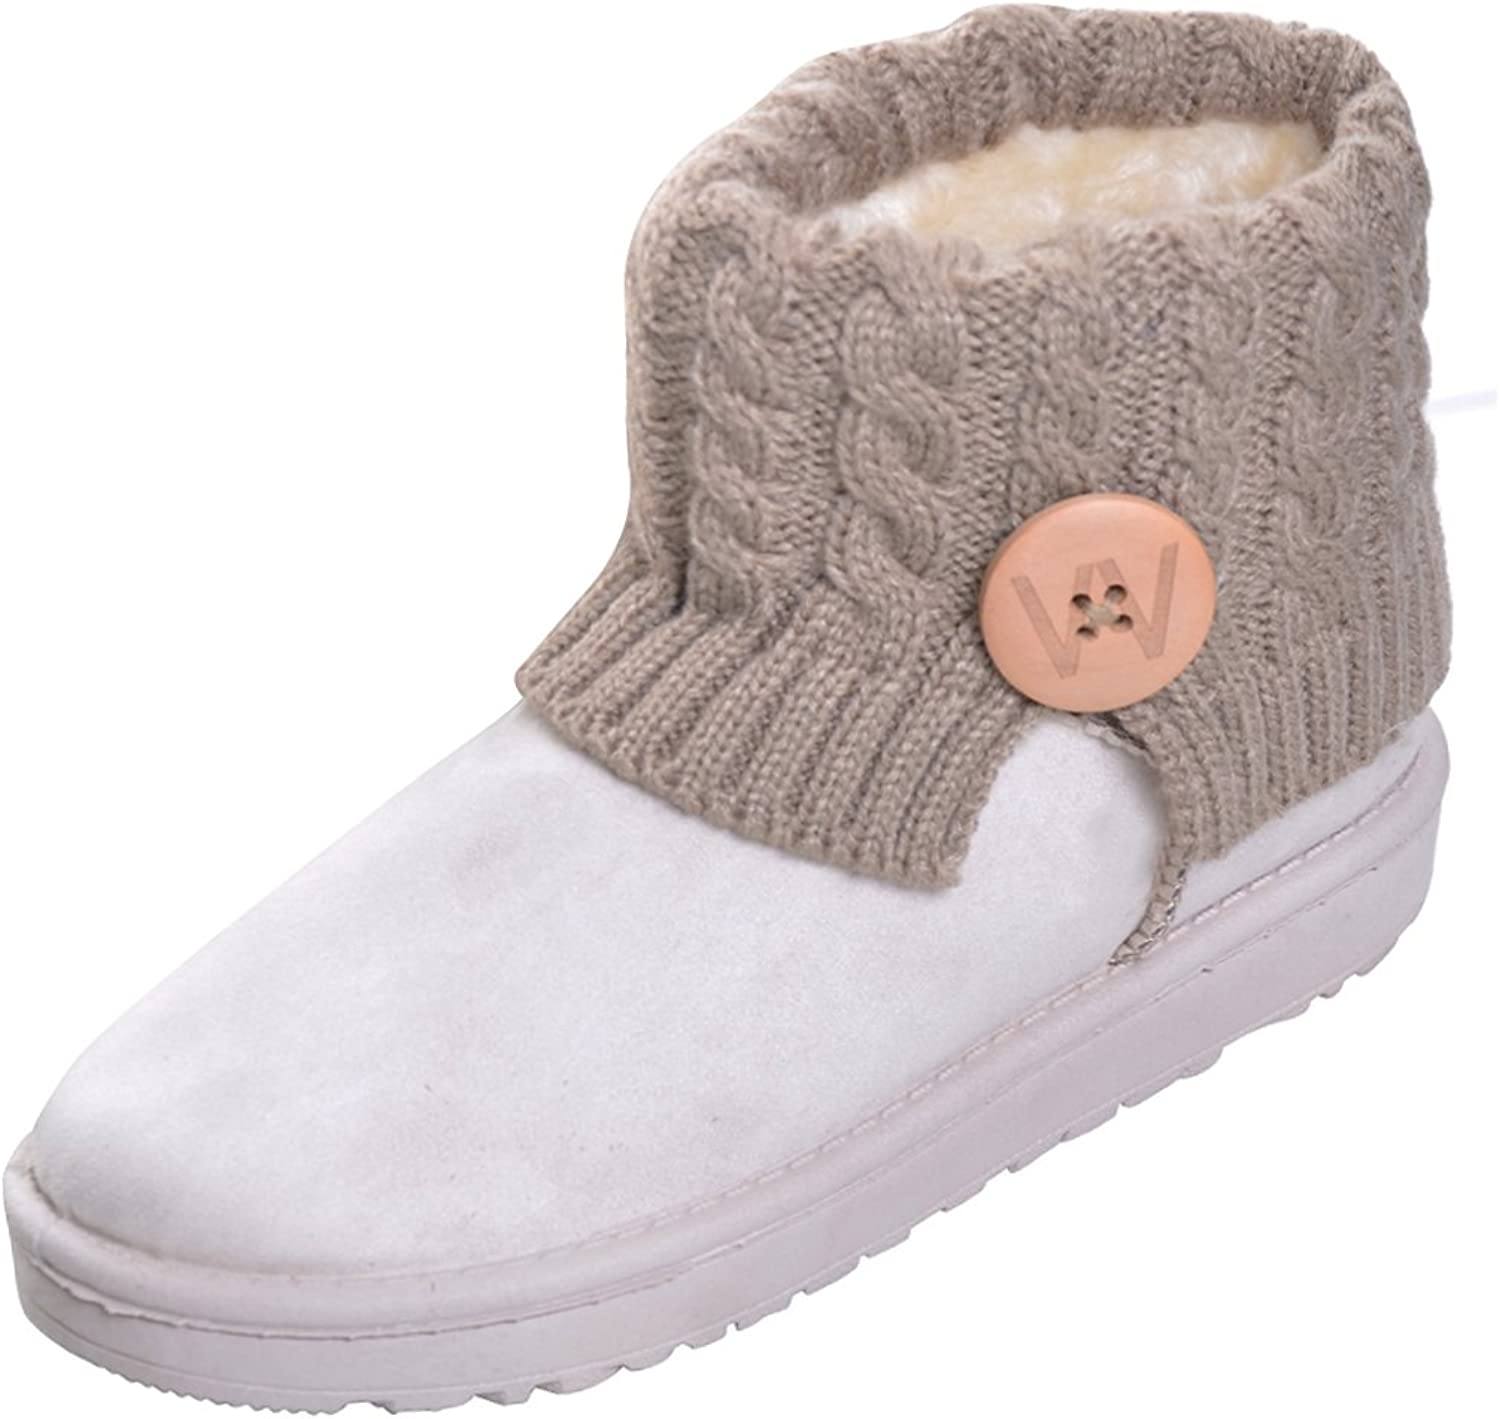 Yellow Tree Company Women Fully Fur Lined Platform Booties Knitting Winter Snow Boots Beige